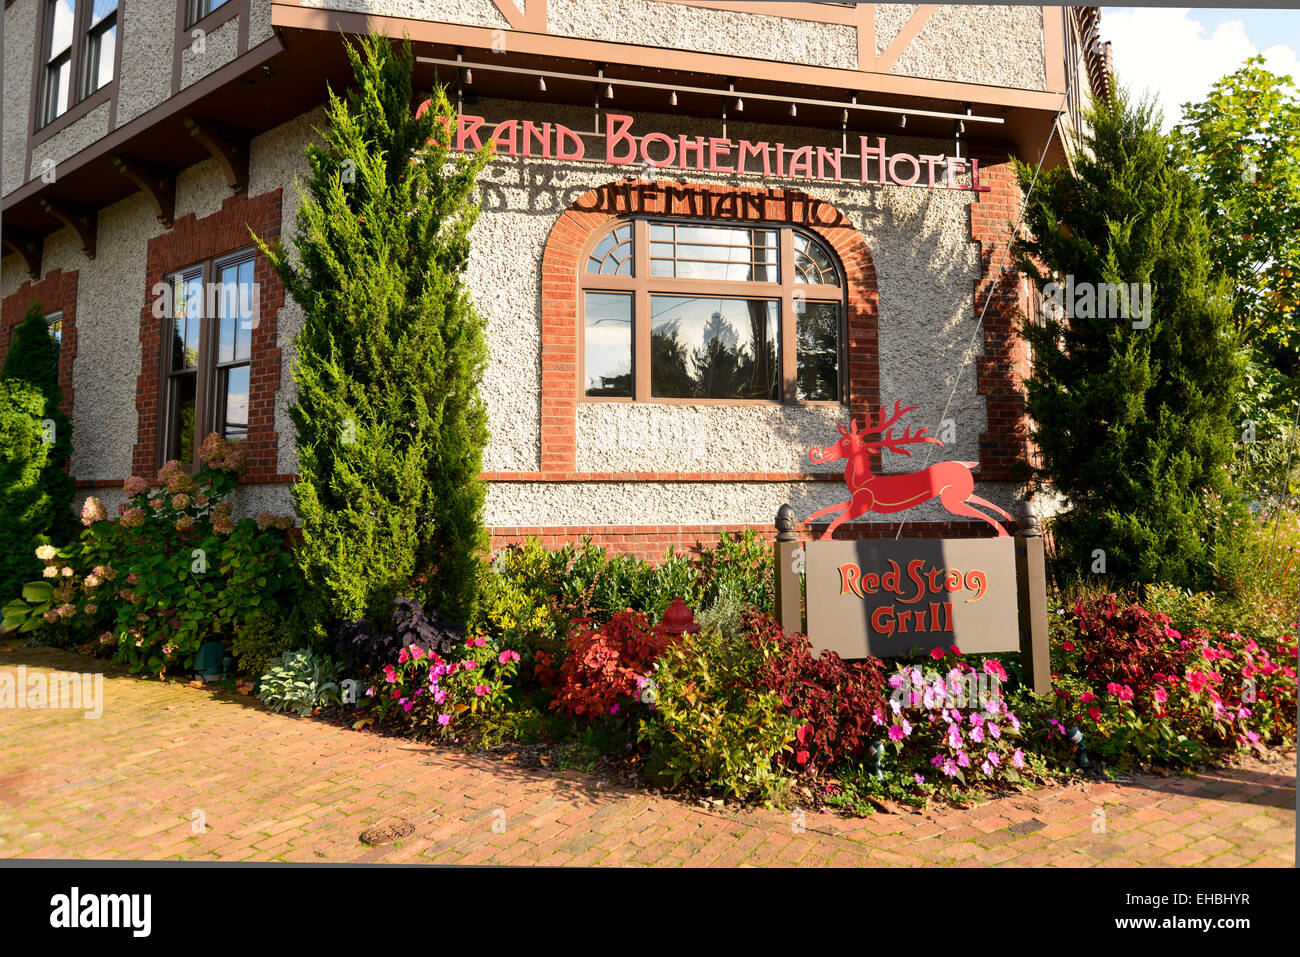 The Red Stag Restaurant exterior at the Grand Bohemian Hotel, Asheville North Carolina - Stock Image